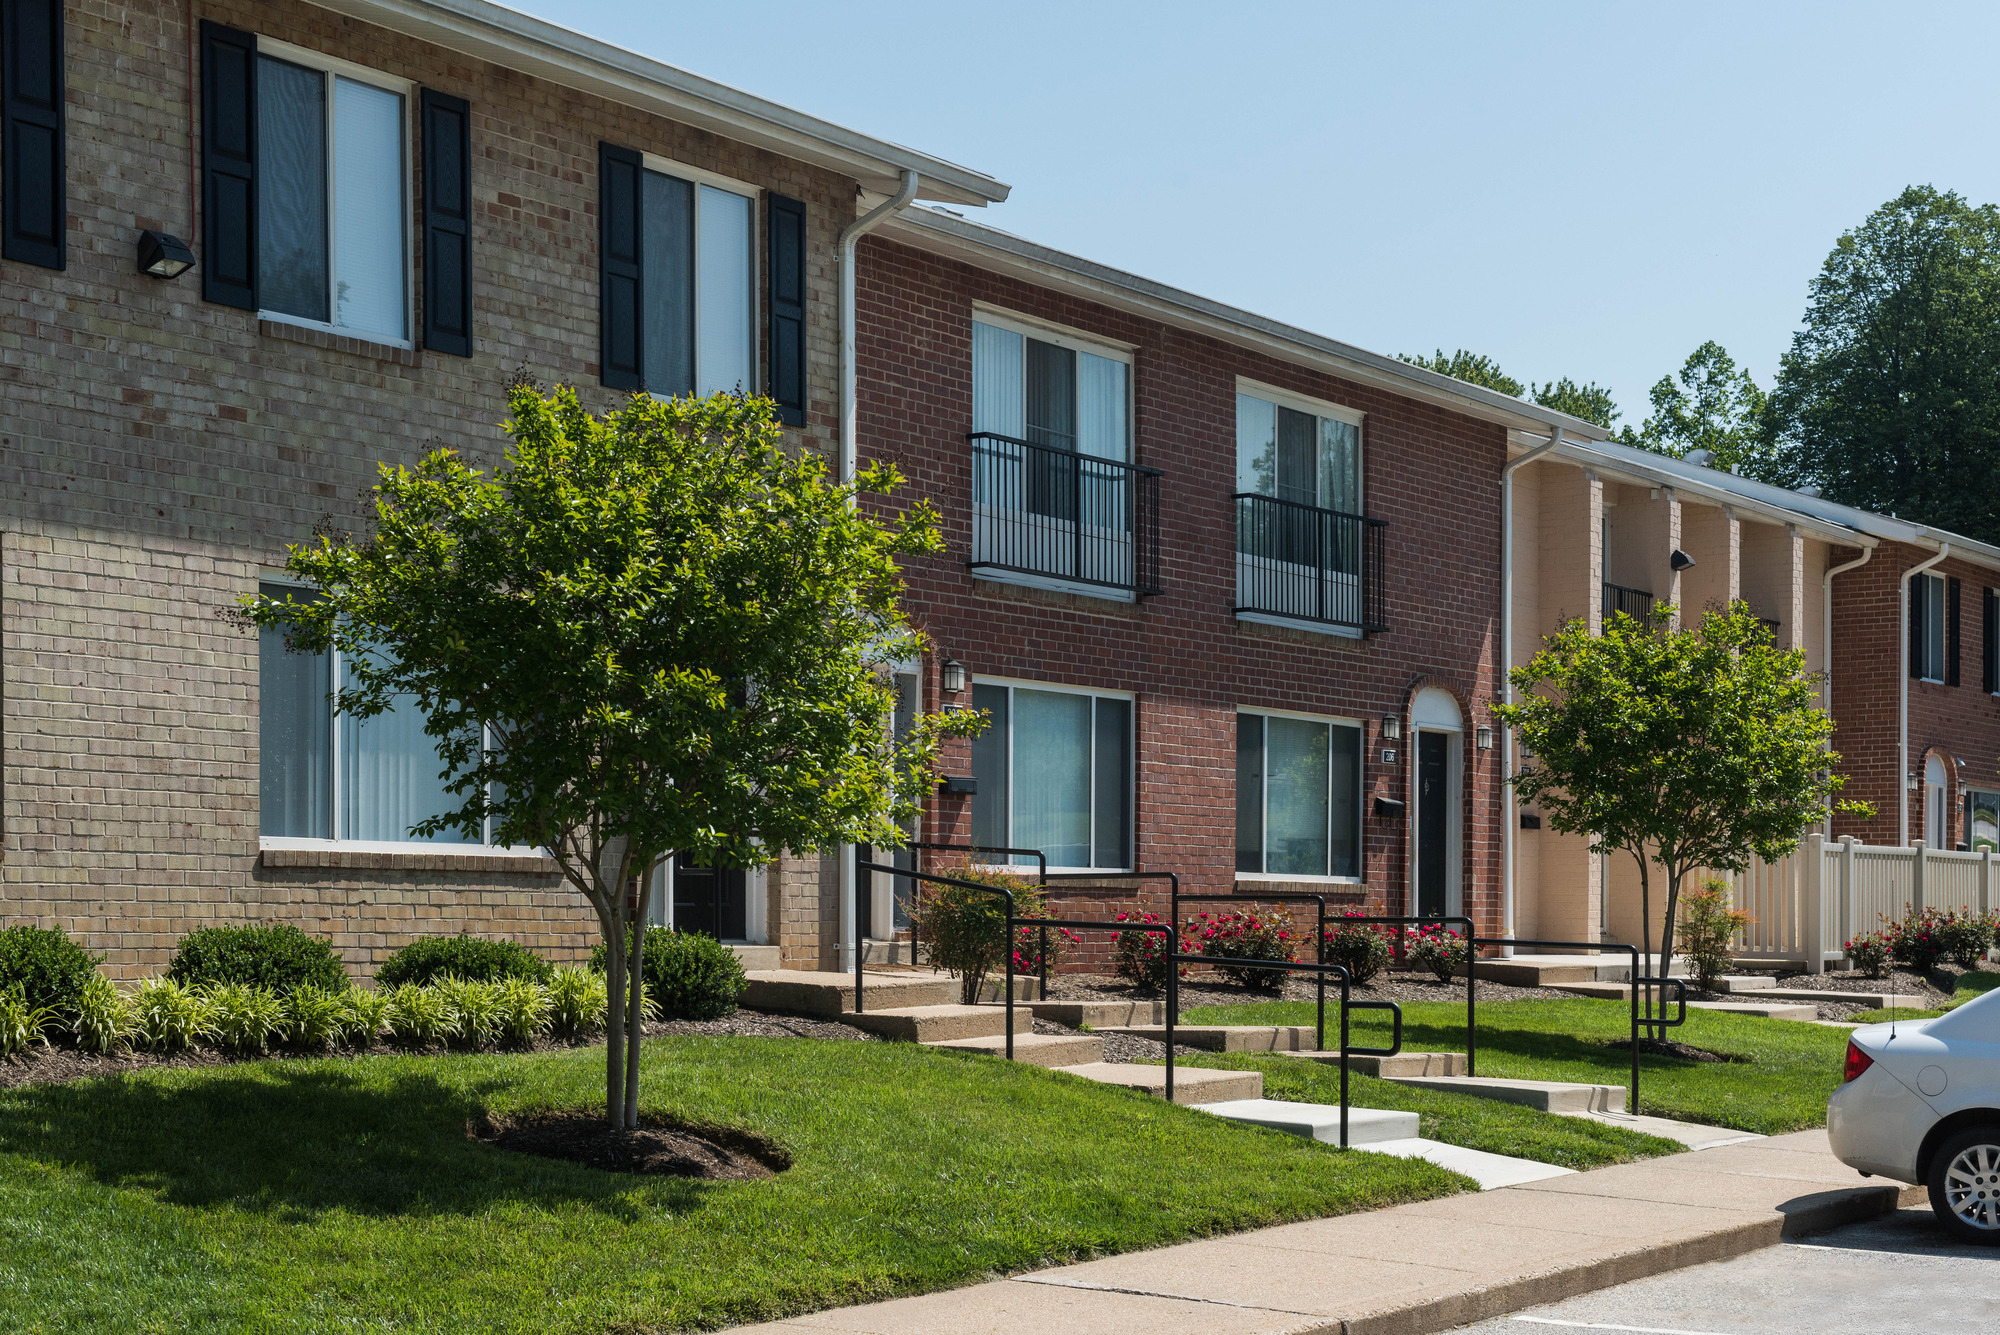 Hampton Manor Apartments & Townhomes in Cockeysville, MD - Townhome Community